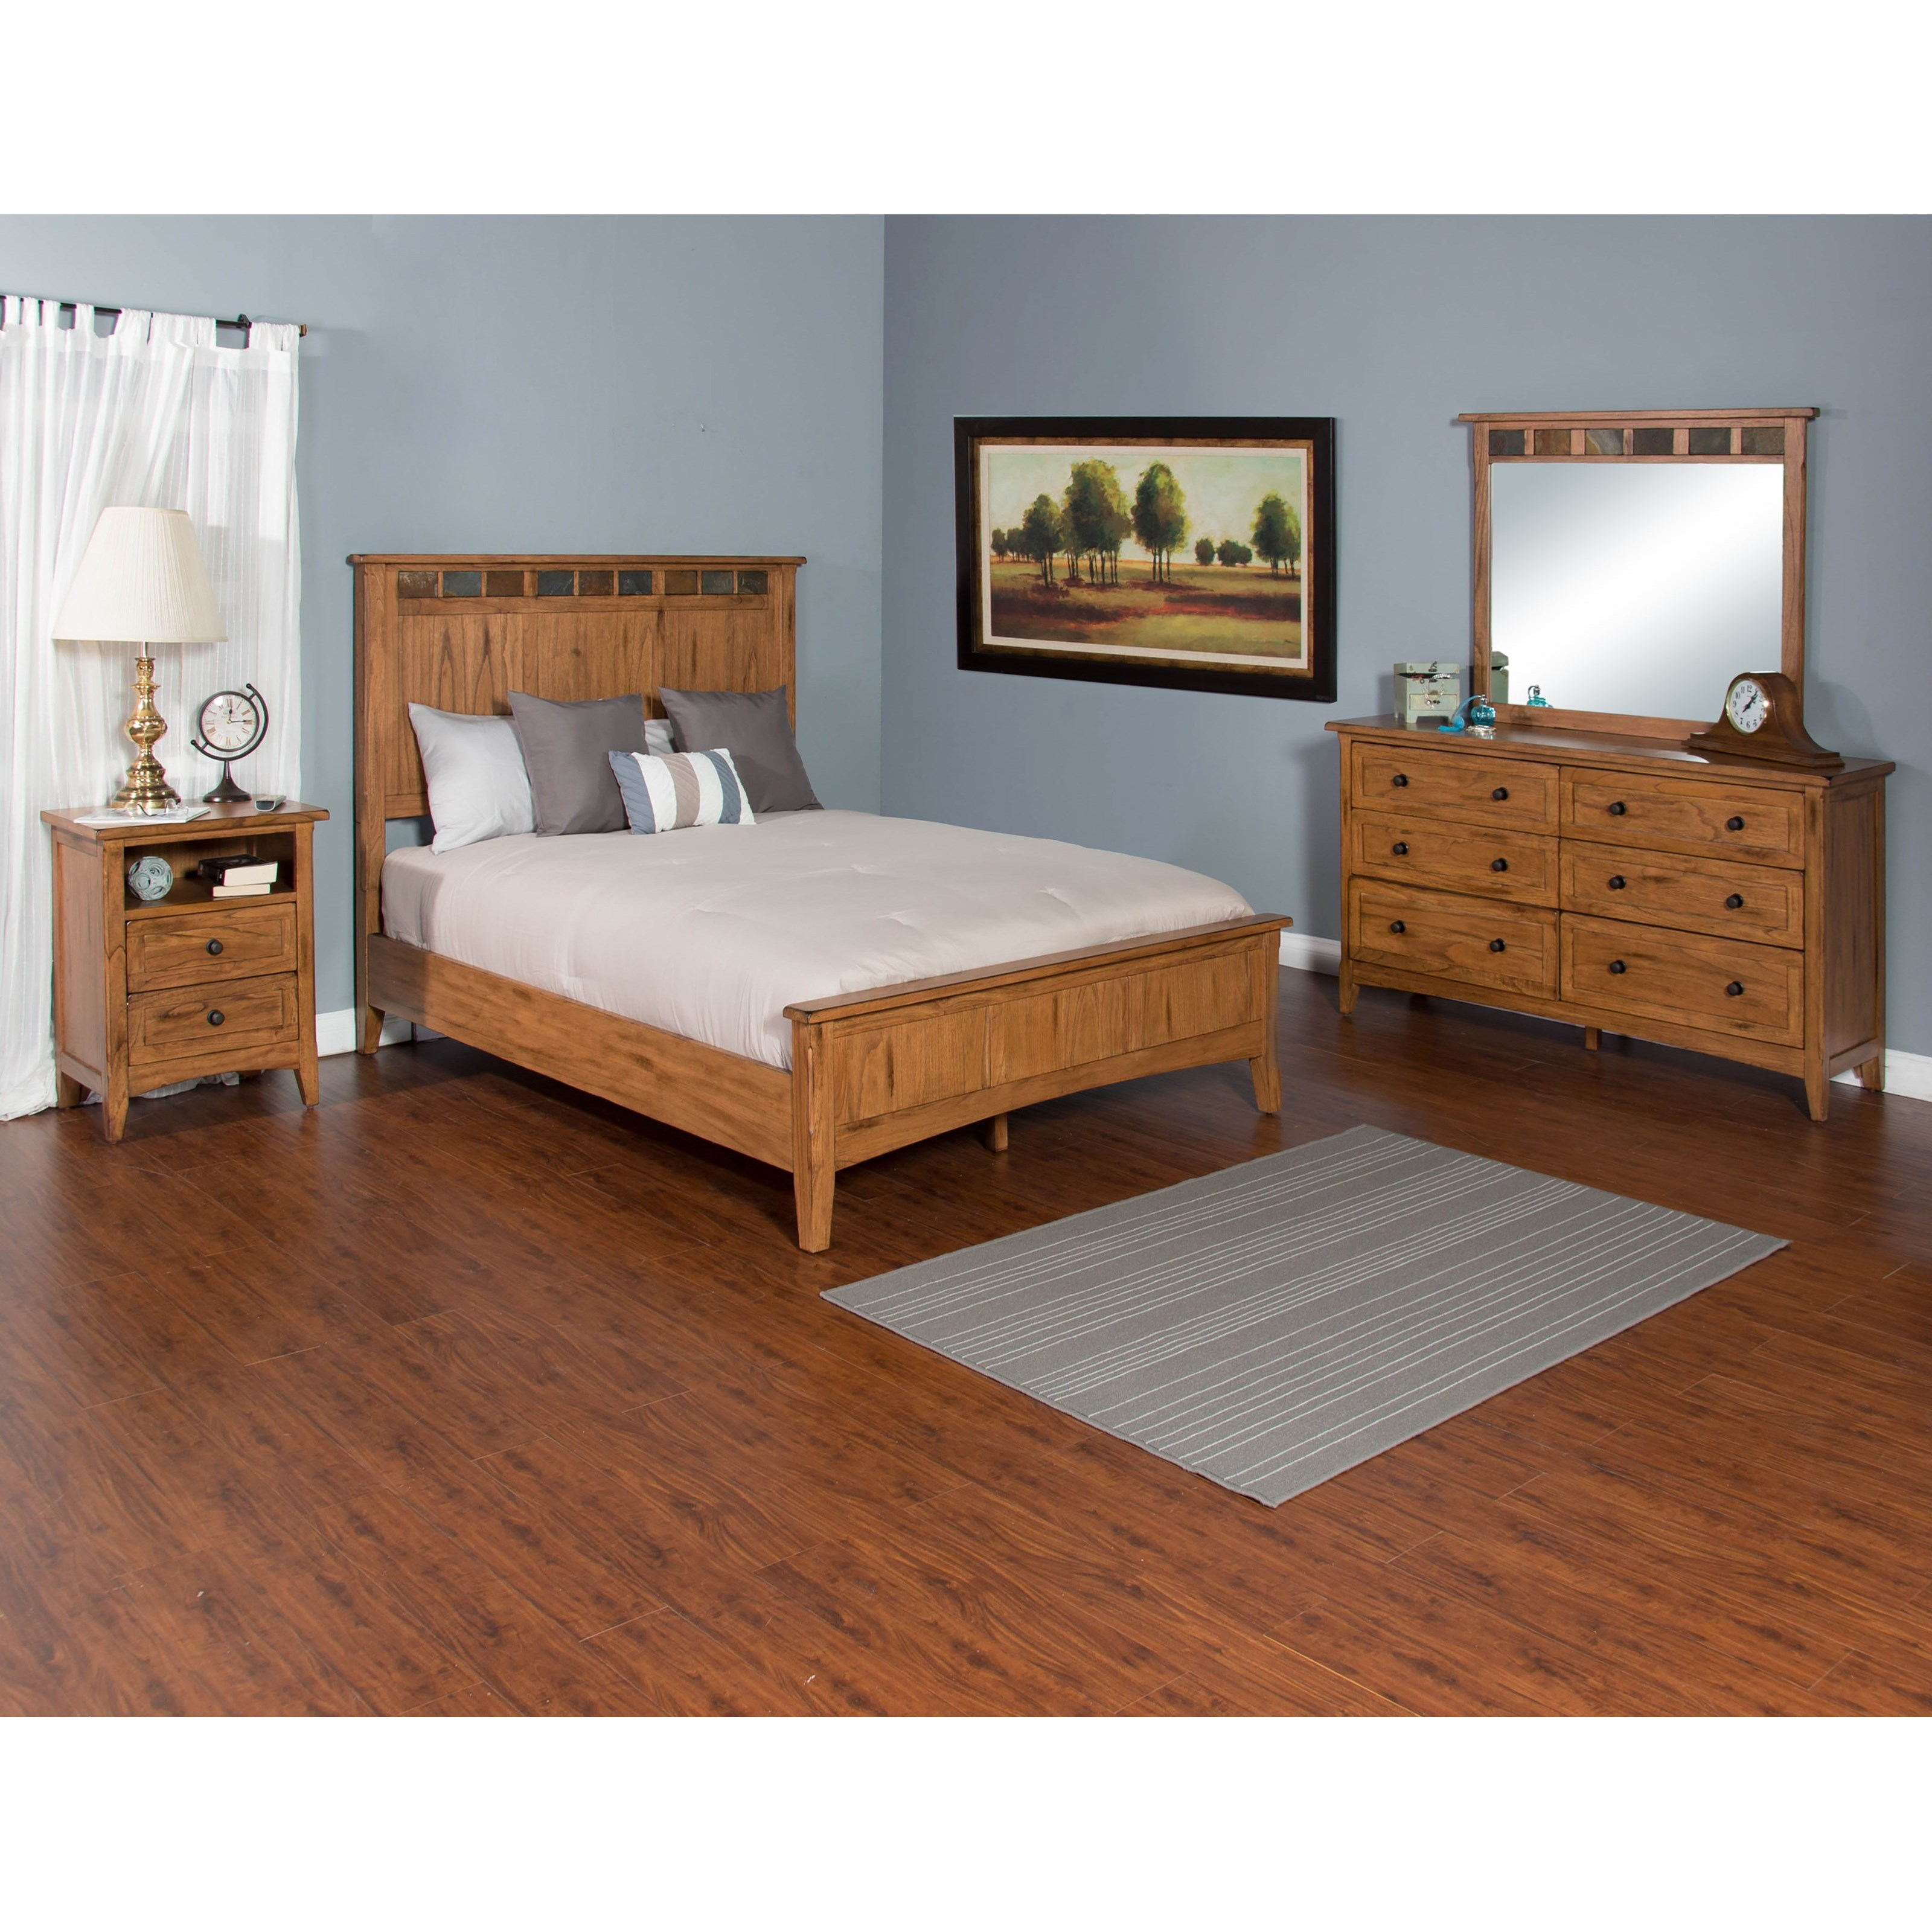 Sunny designs sedona queen bedroom group zak 39 s fine for Bedroom furniture groups